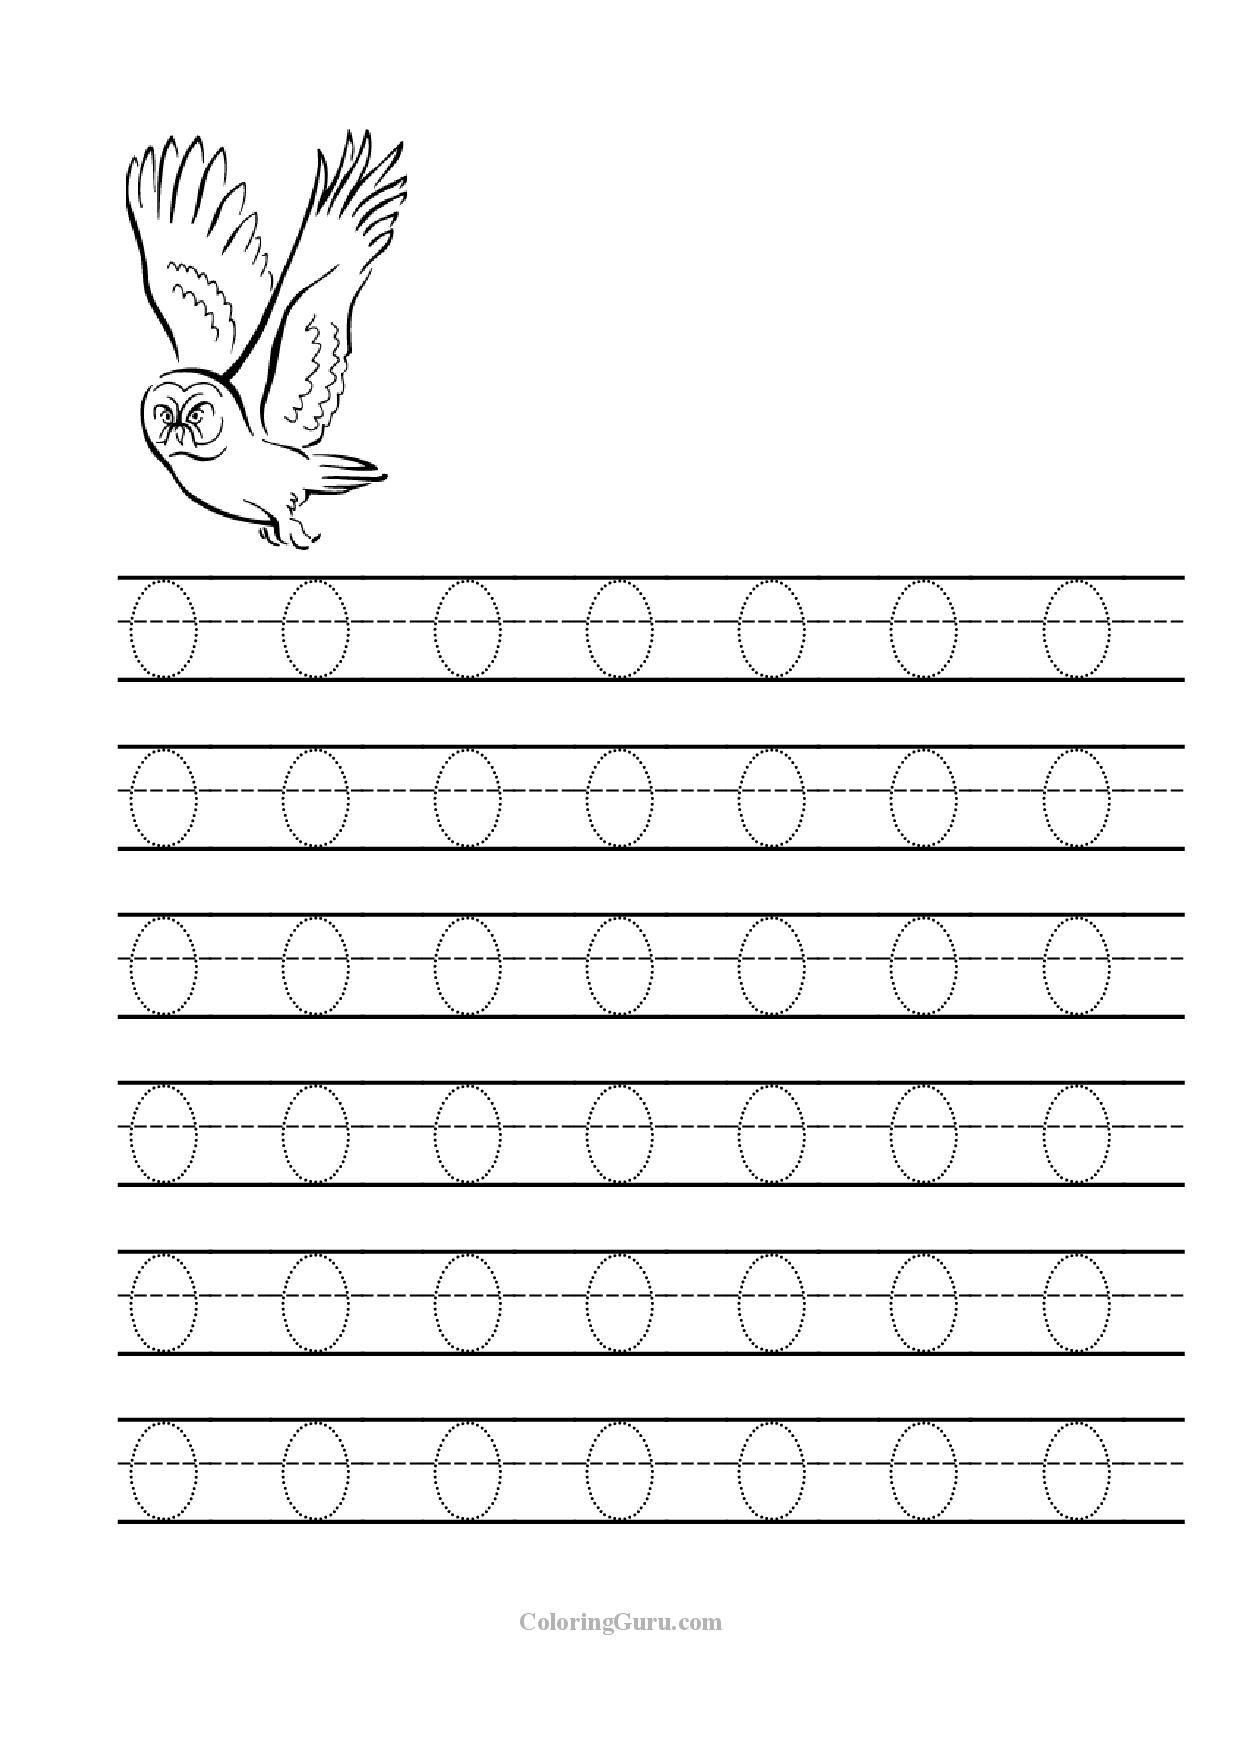 Letter O Worksheets for Preschool Tracing Letter O Worksheets for Preschool 1 240—1 754